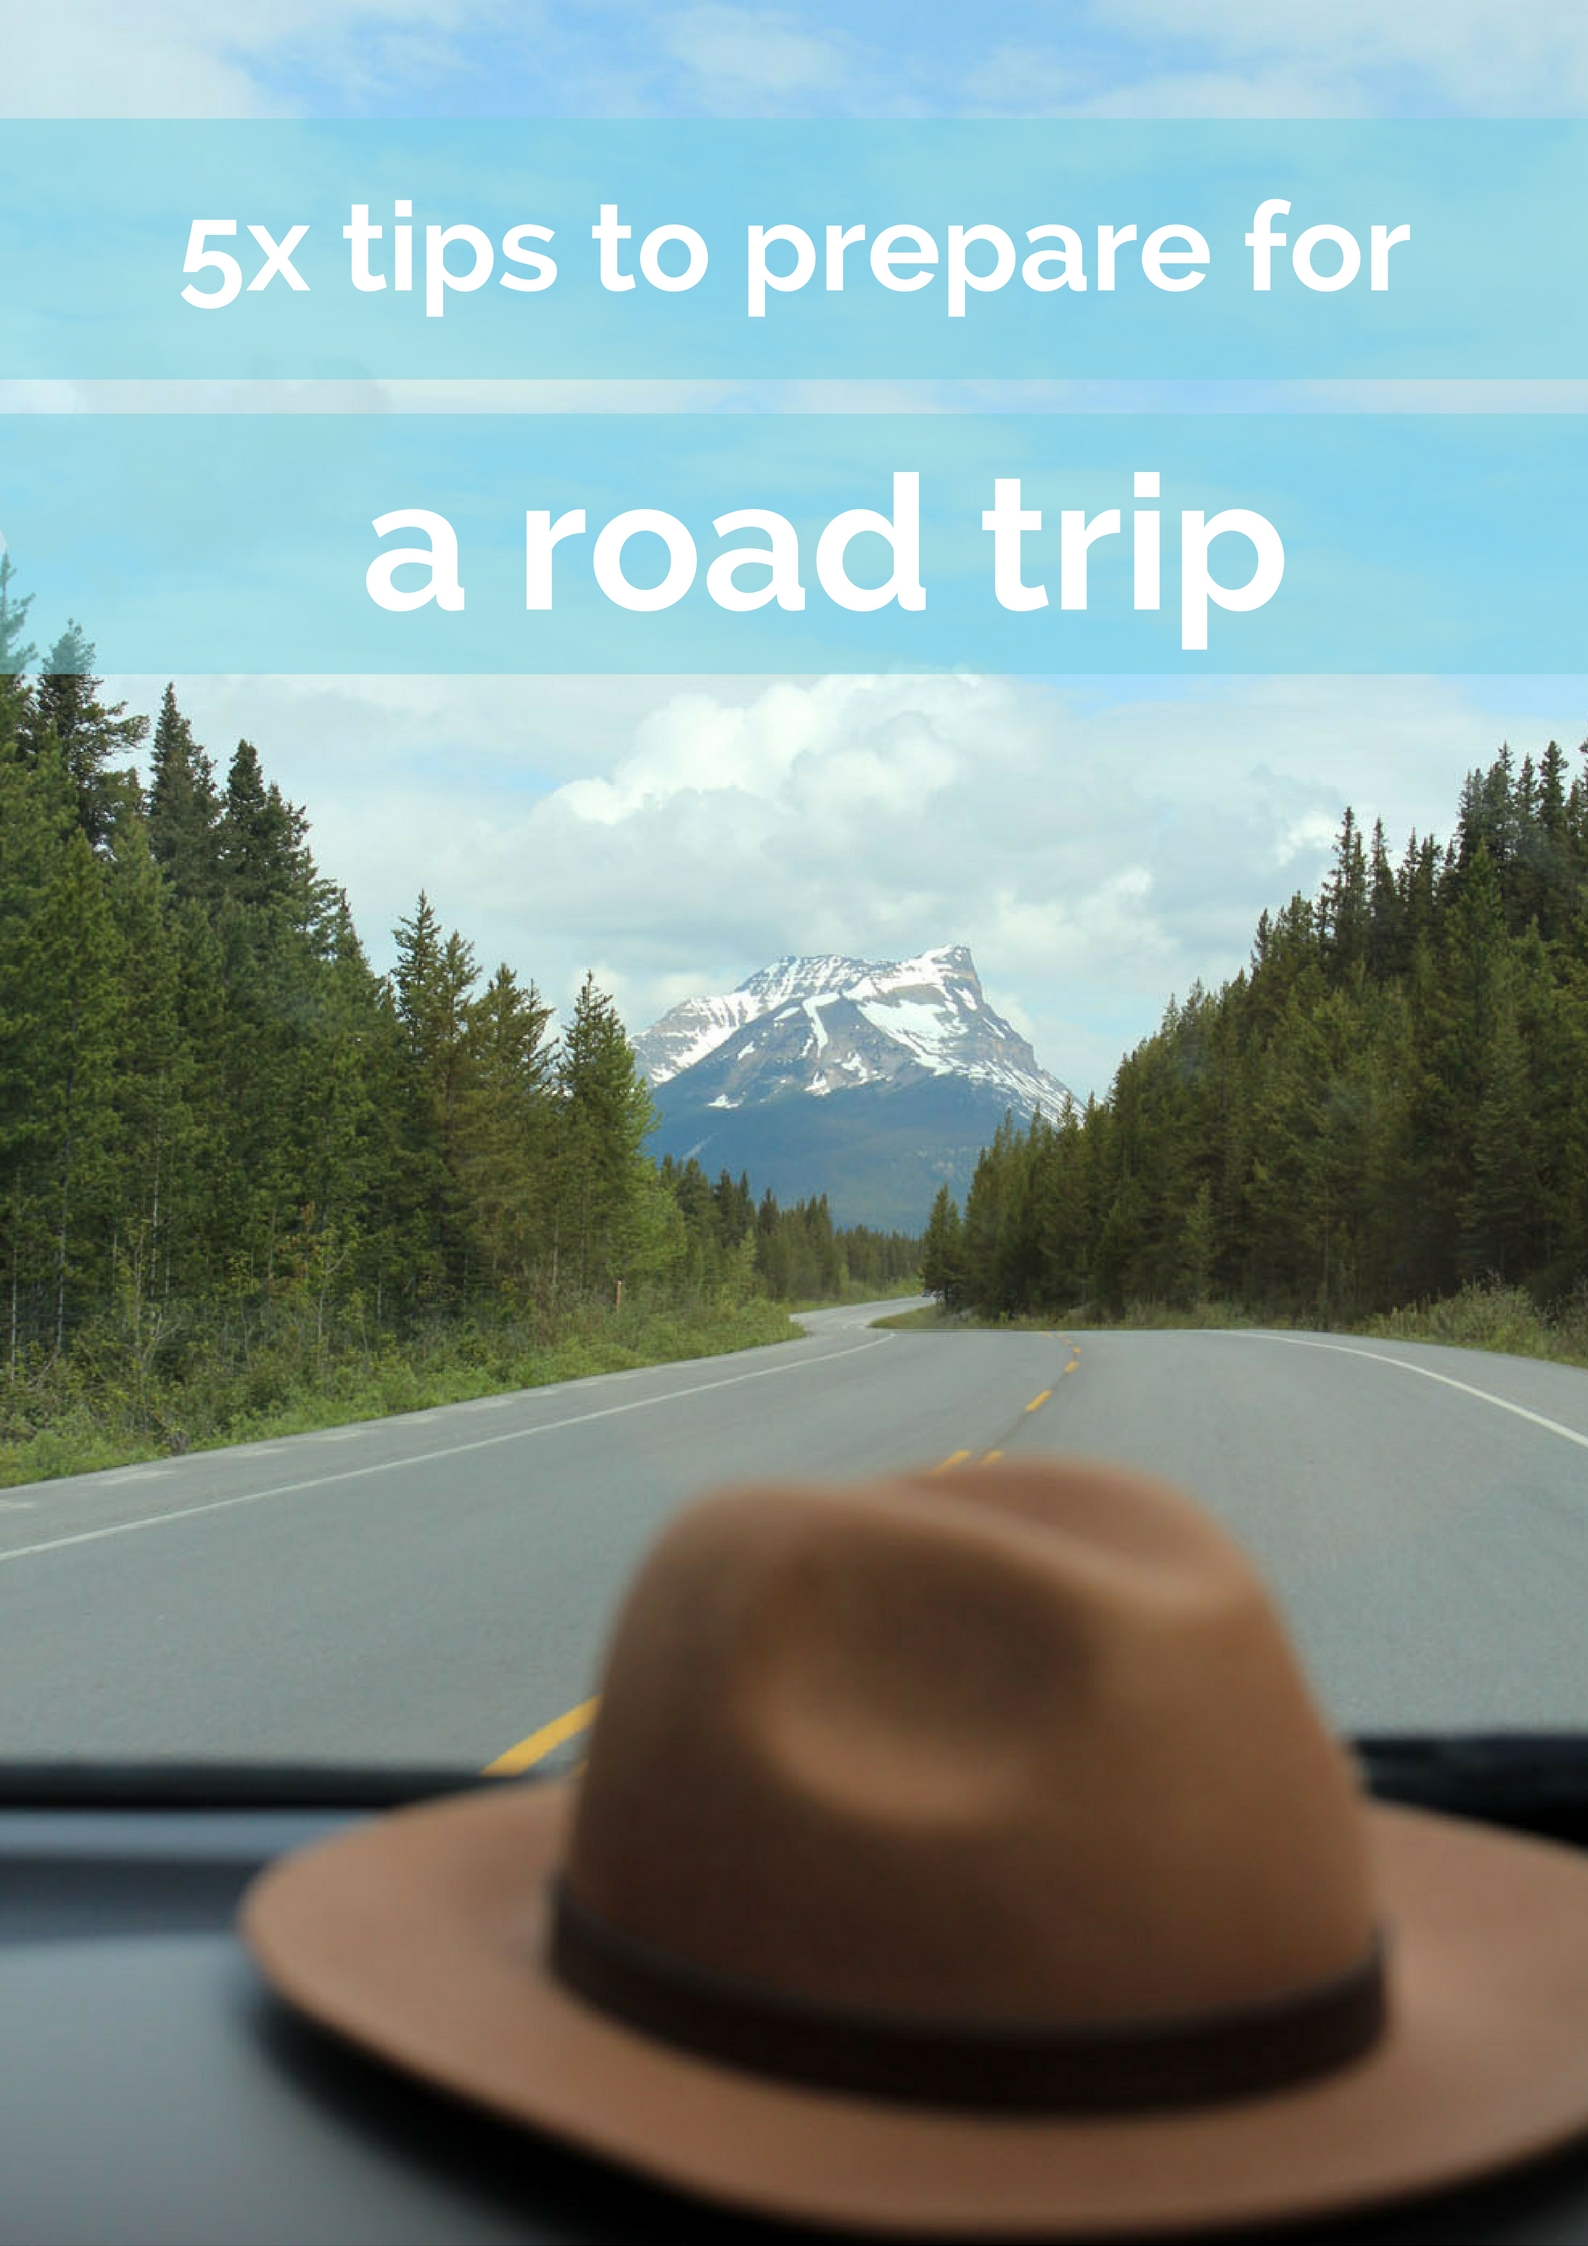 5x tips to prepare for a road trip - Map of Joy